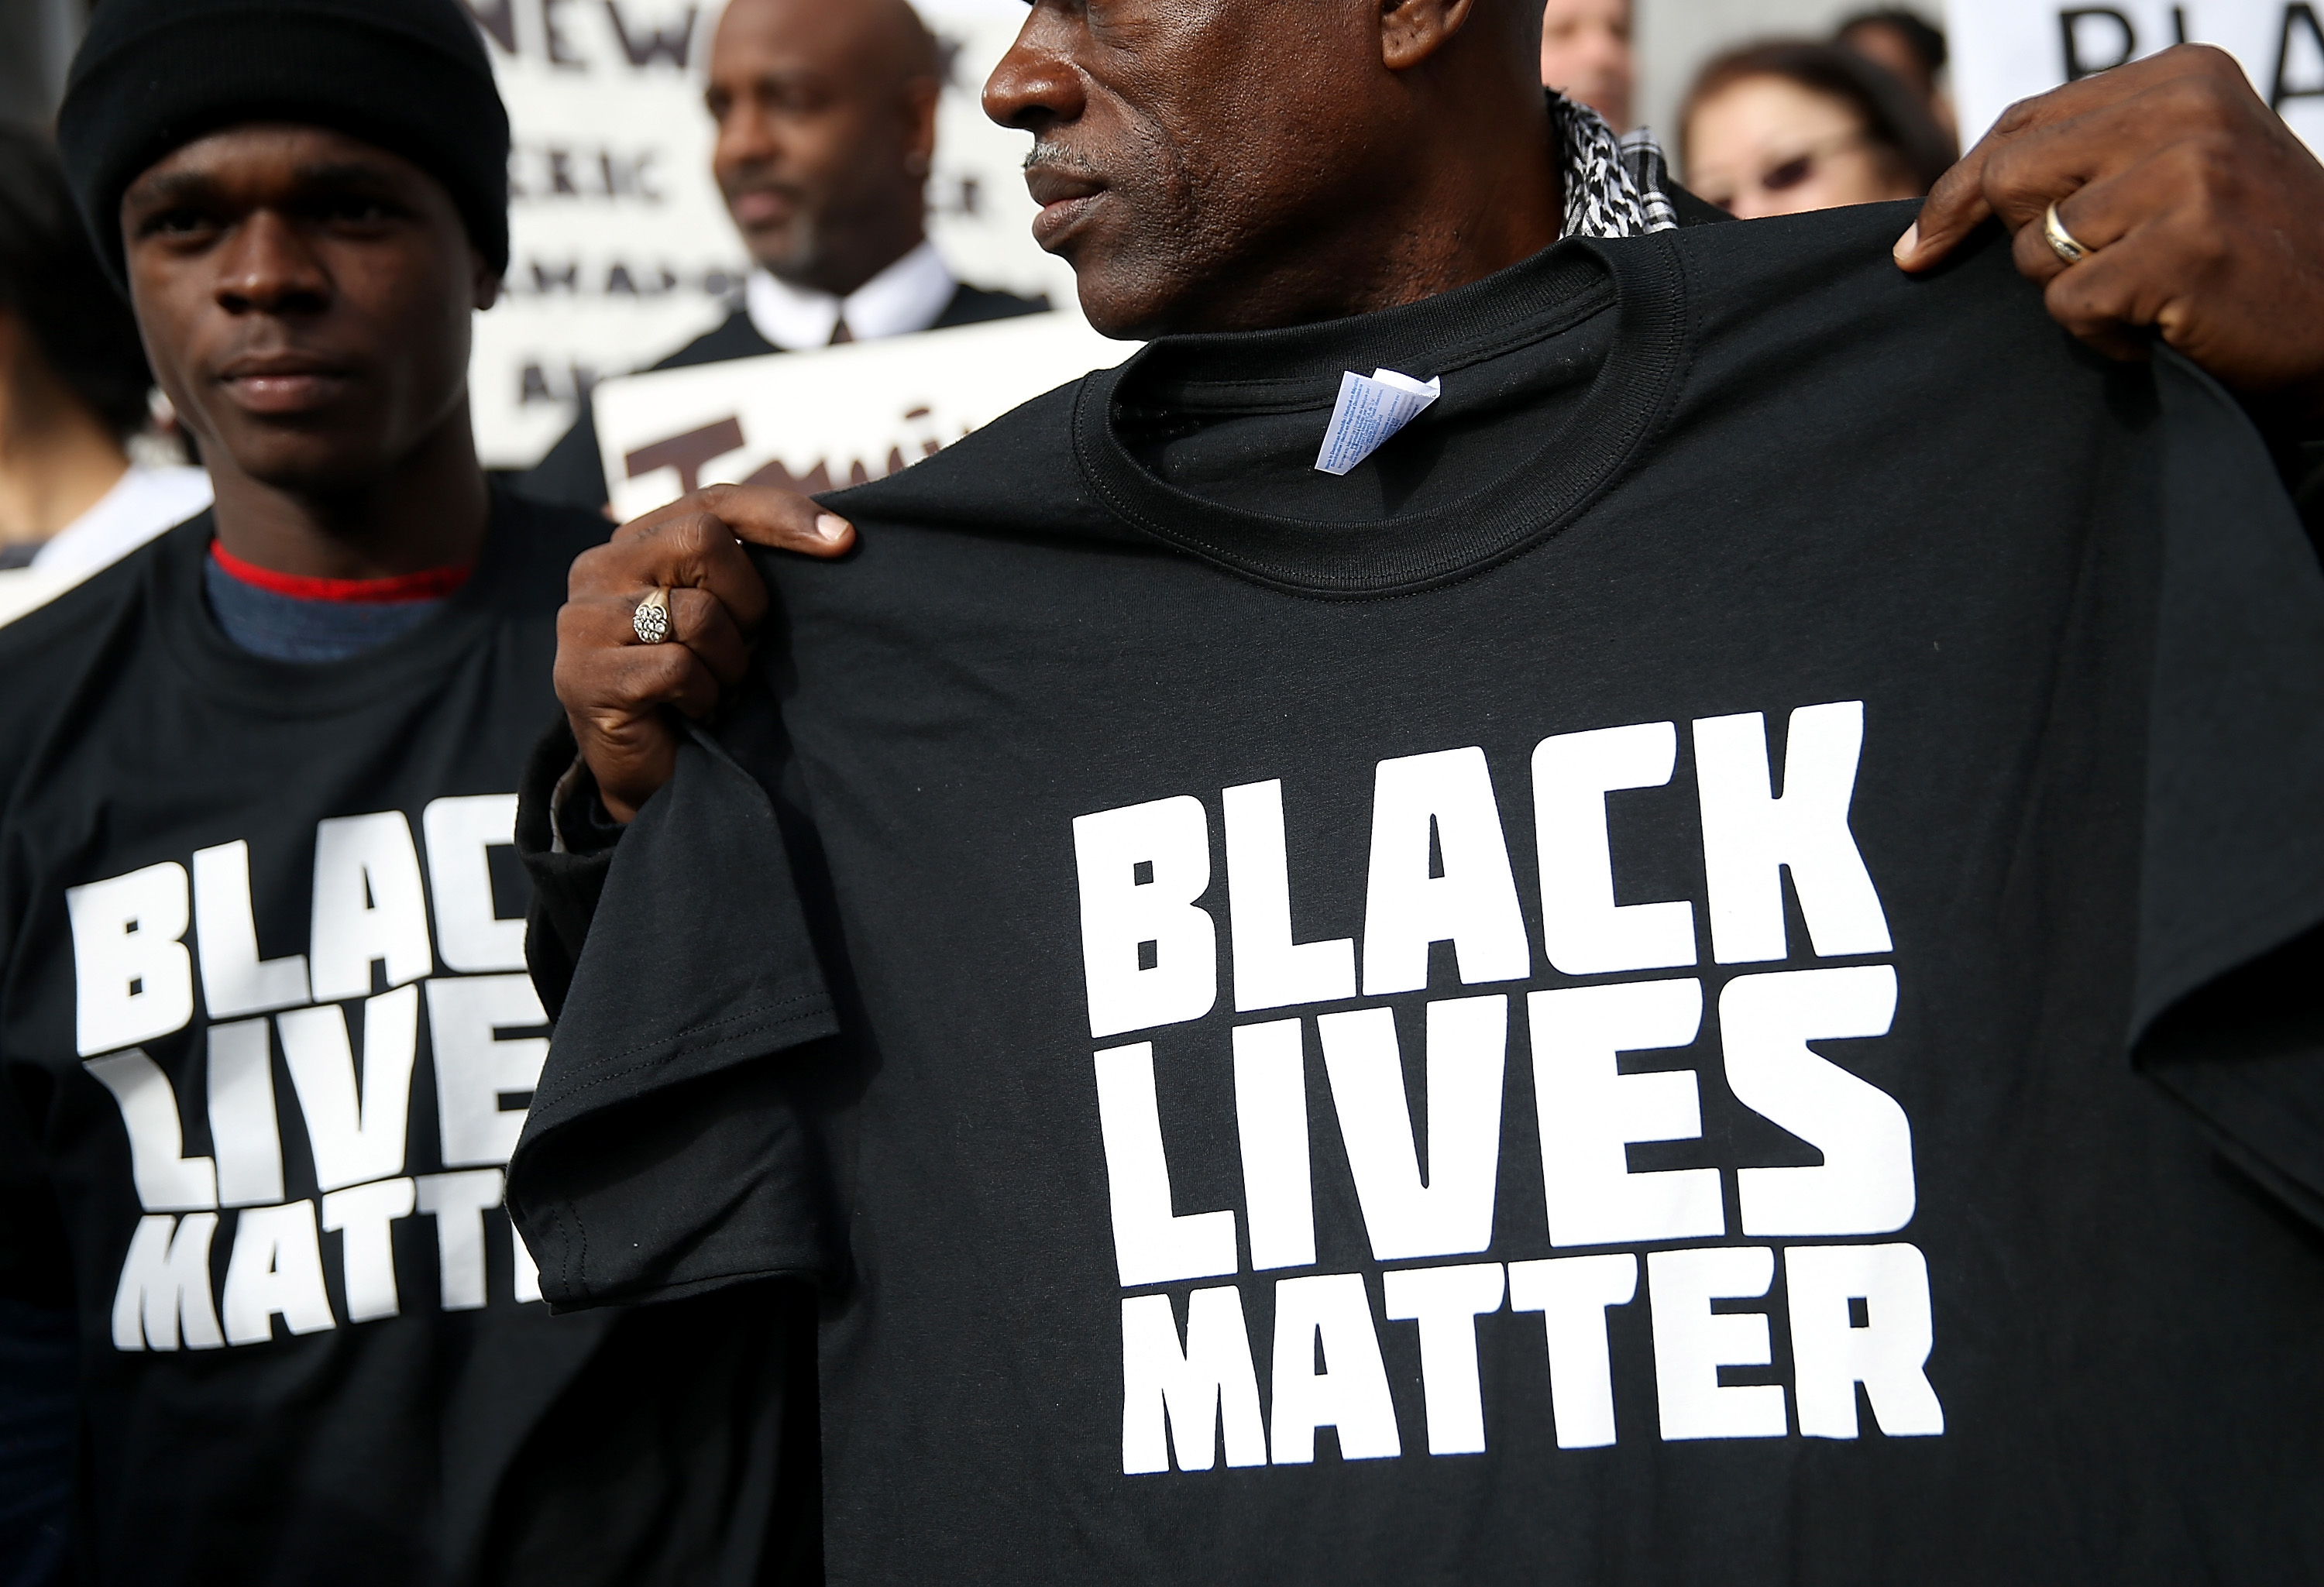 A protestor holds a black lives matter t-shirt during a  Hands Up, Don't Shoot  demonstration in front of the San Francisco Hall of Justice on December 18, 2014 in San Francisco, California.